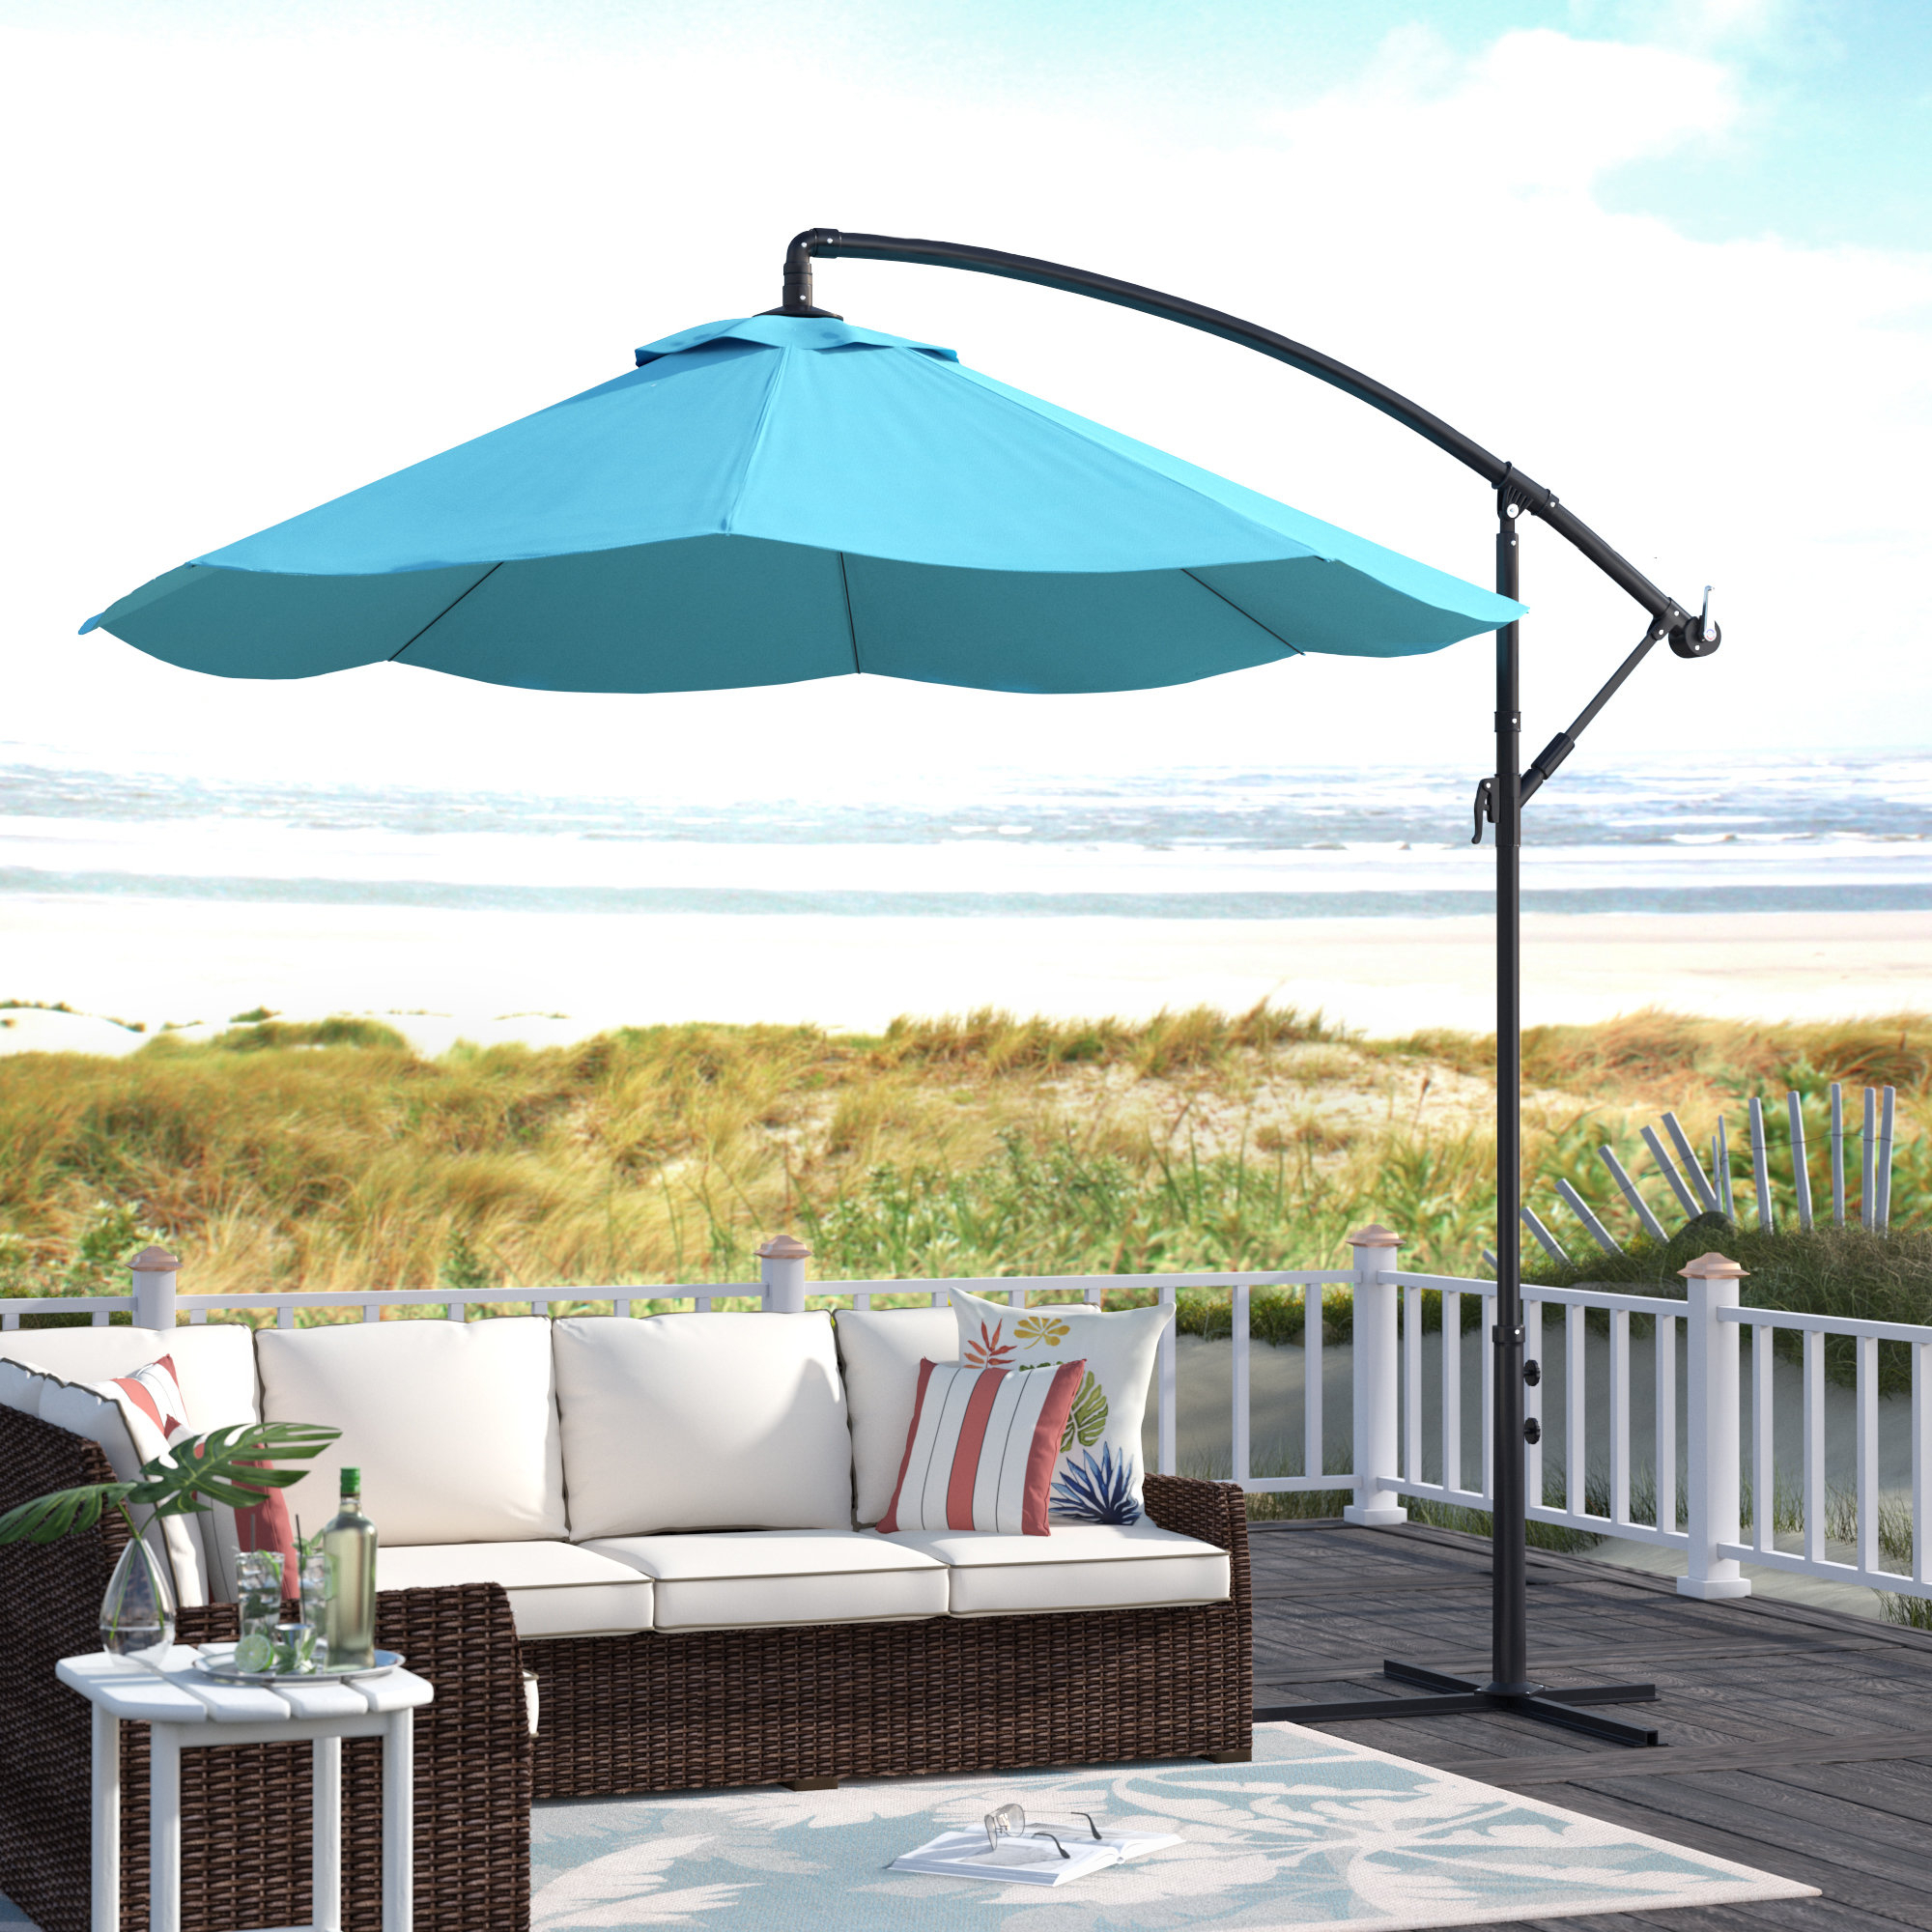 Widely Used Vassalboro 10' Cantilever Umbrella Within Gribble 3Cantilever Umbrellas (View 14 of 20)